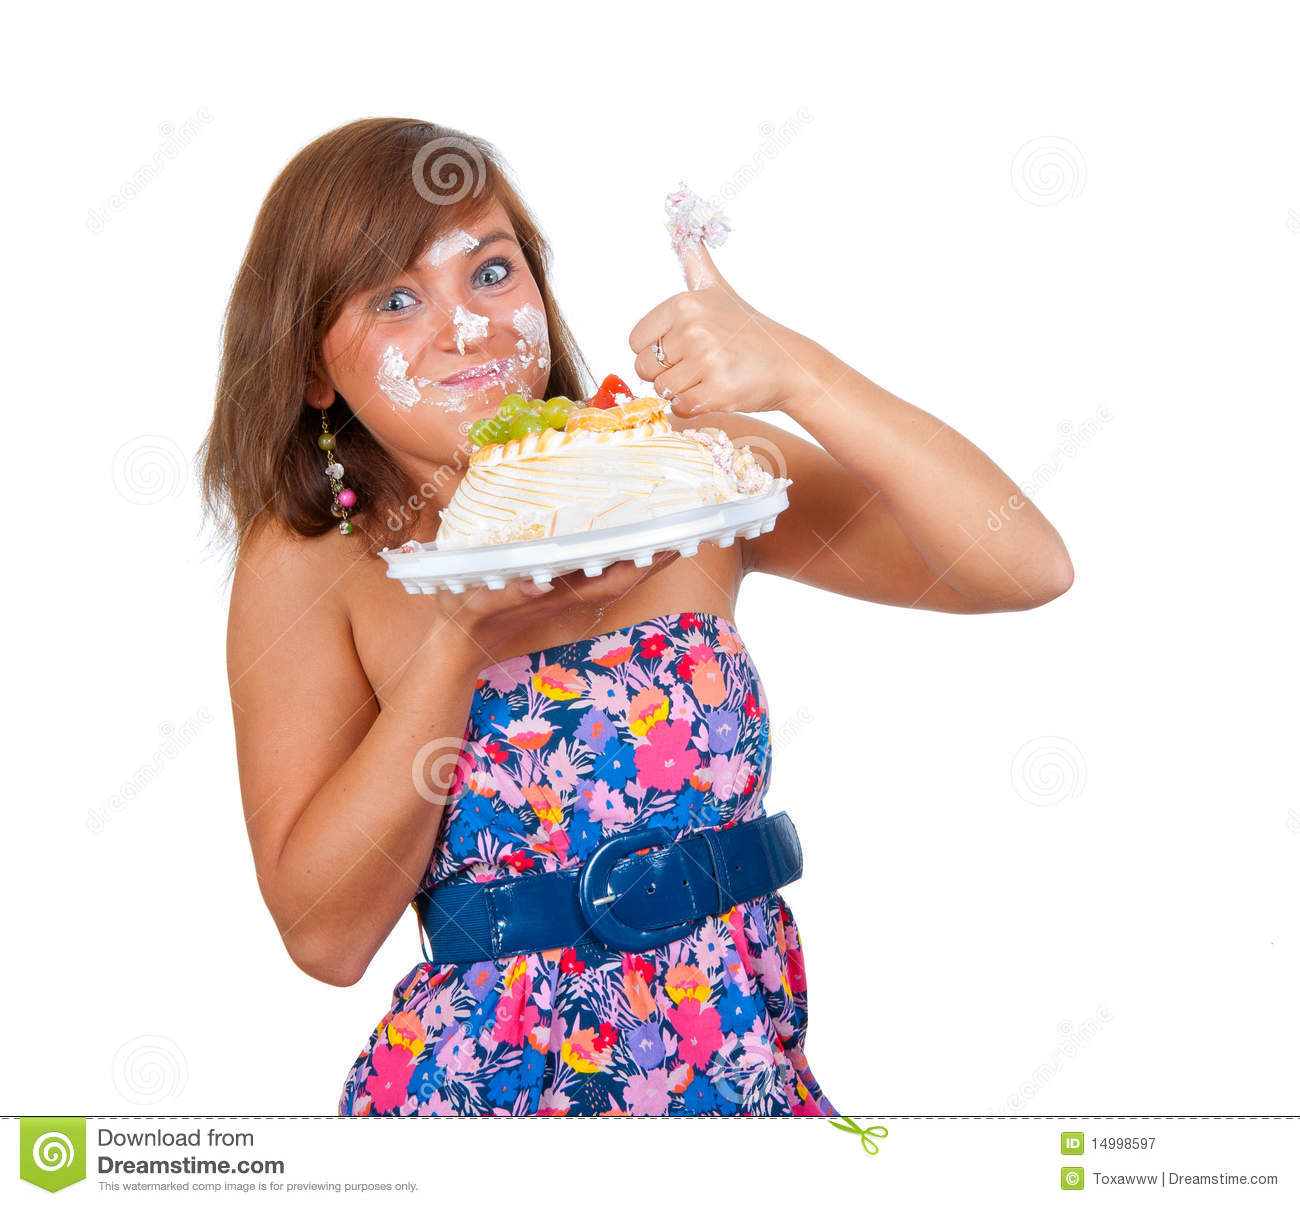 how to fix cake face